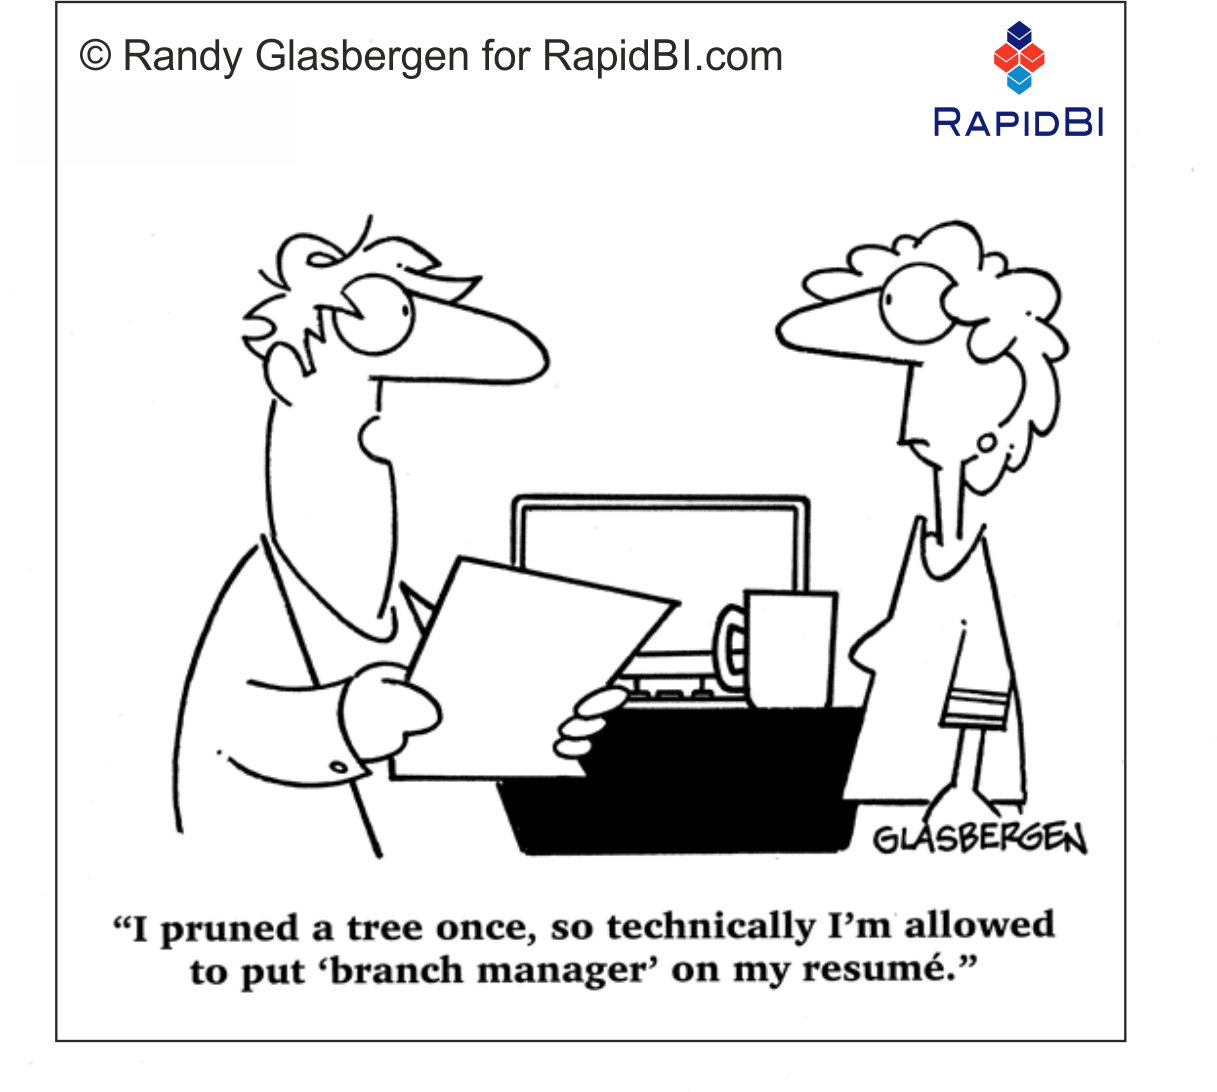 RapidBI Daily Business Cartoon #163